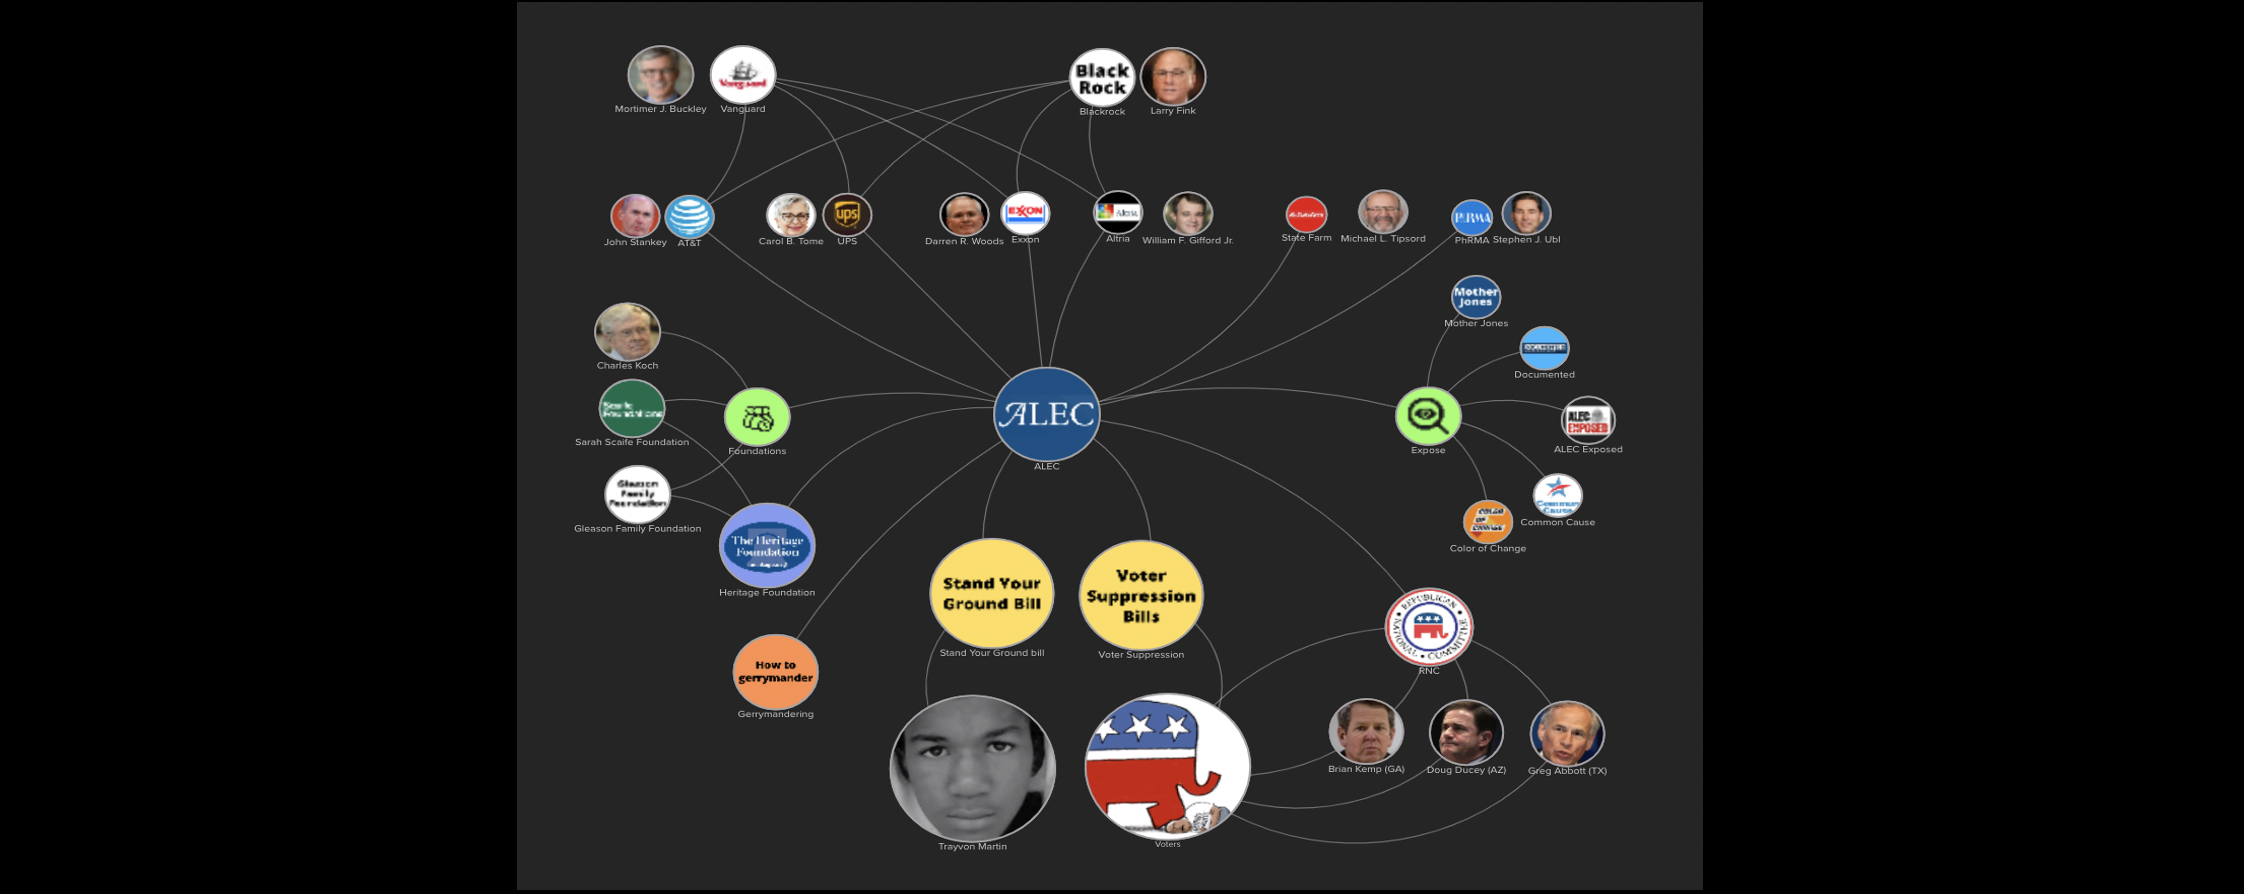 Follow the dark money that funds ALEC and its voter suppression bills.